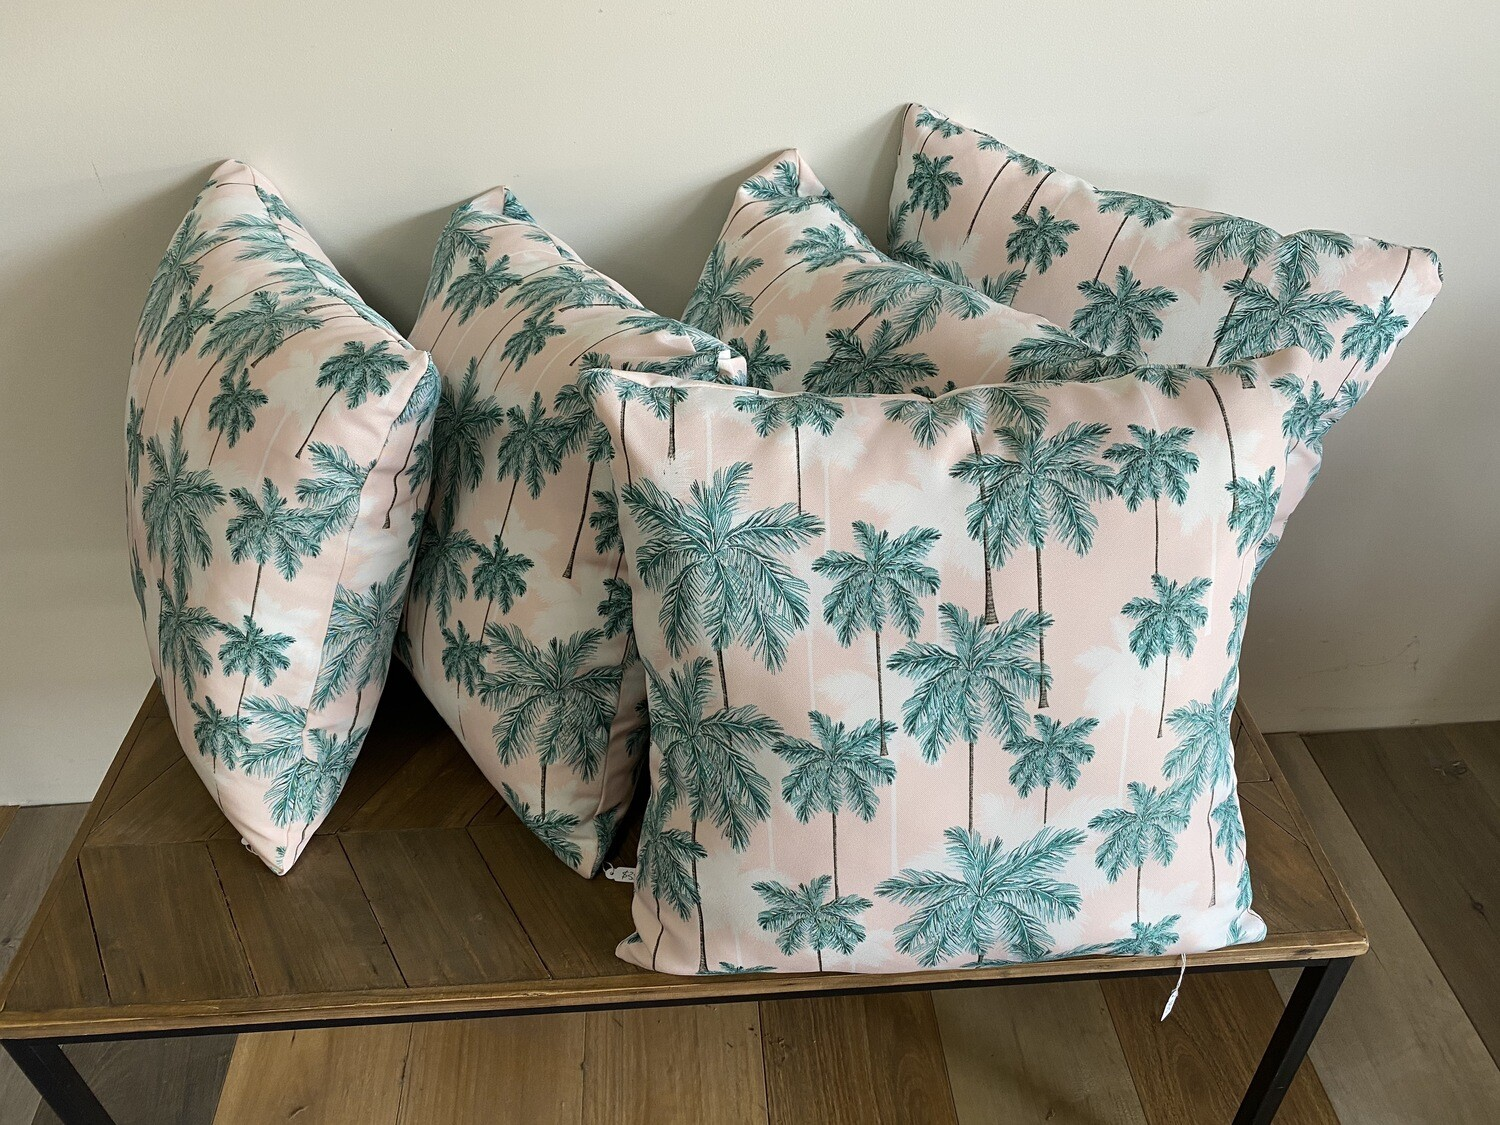 Palm tree printed scatter cushion